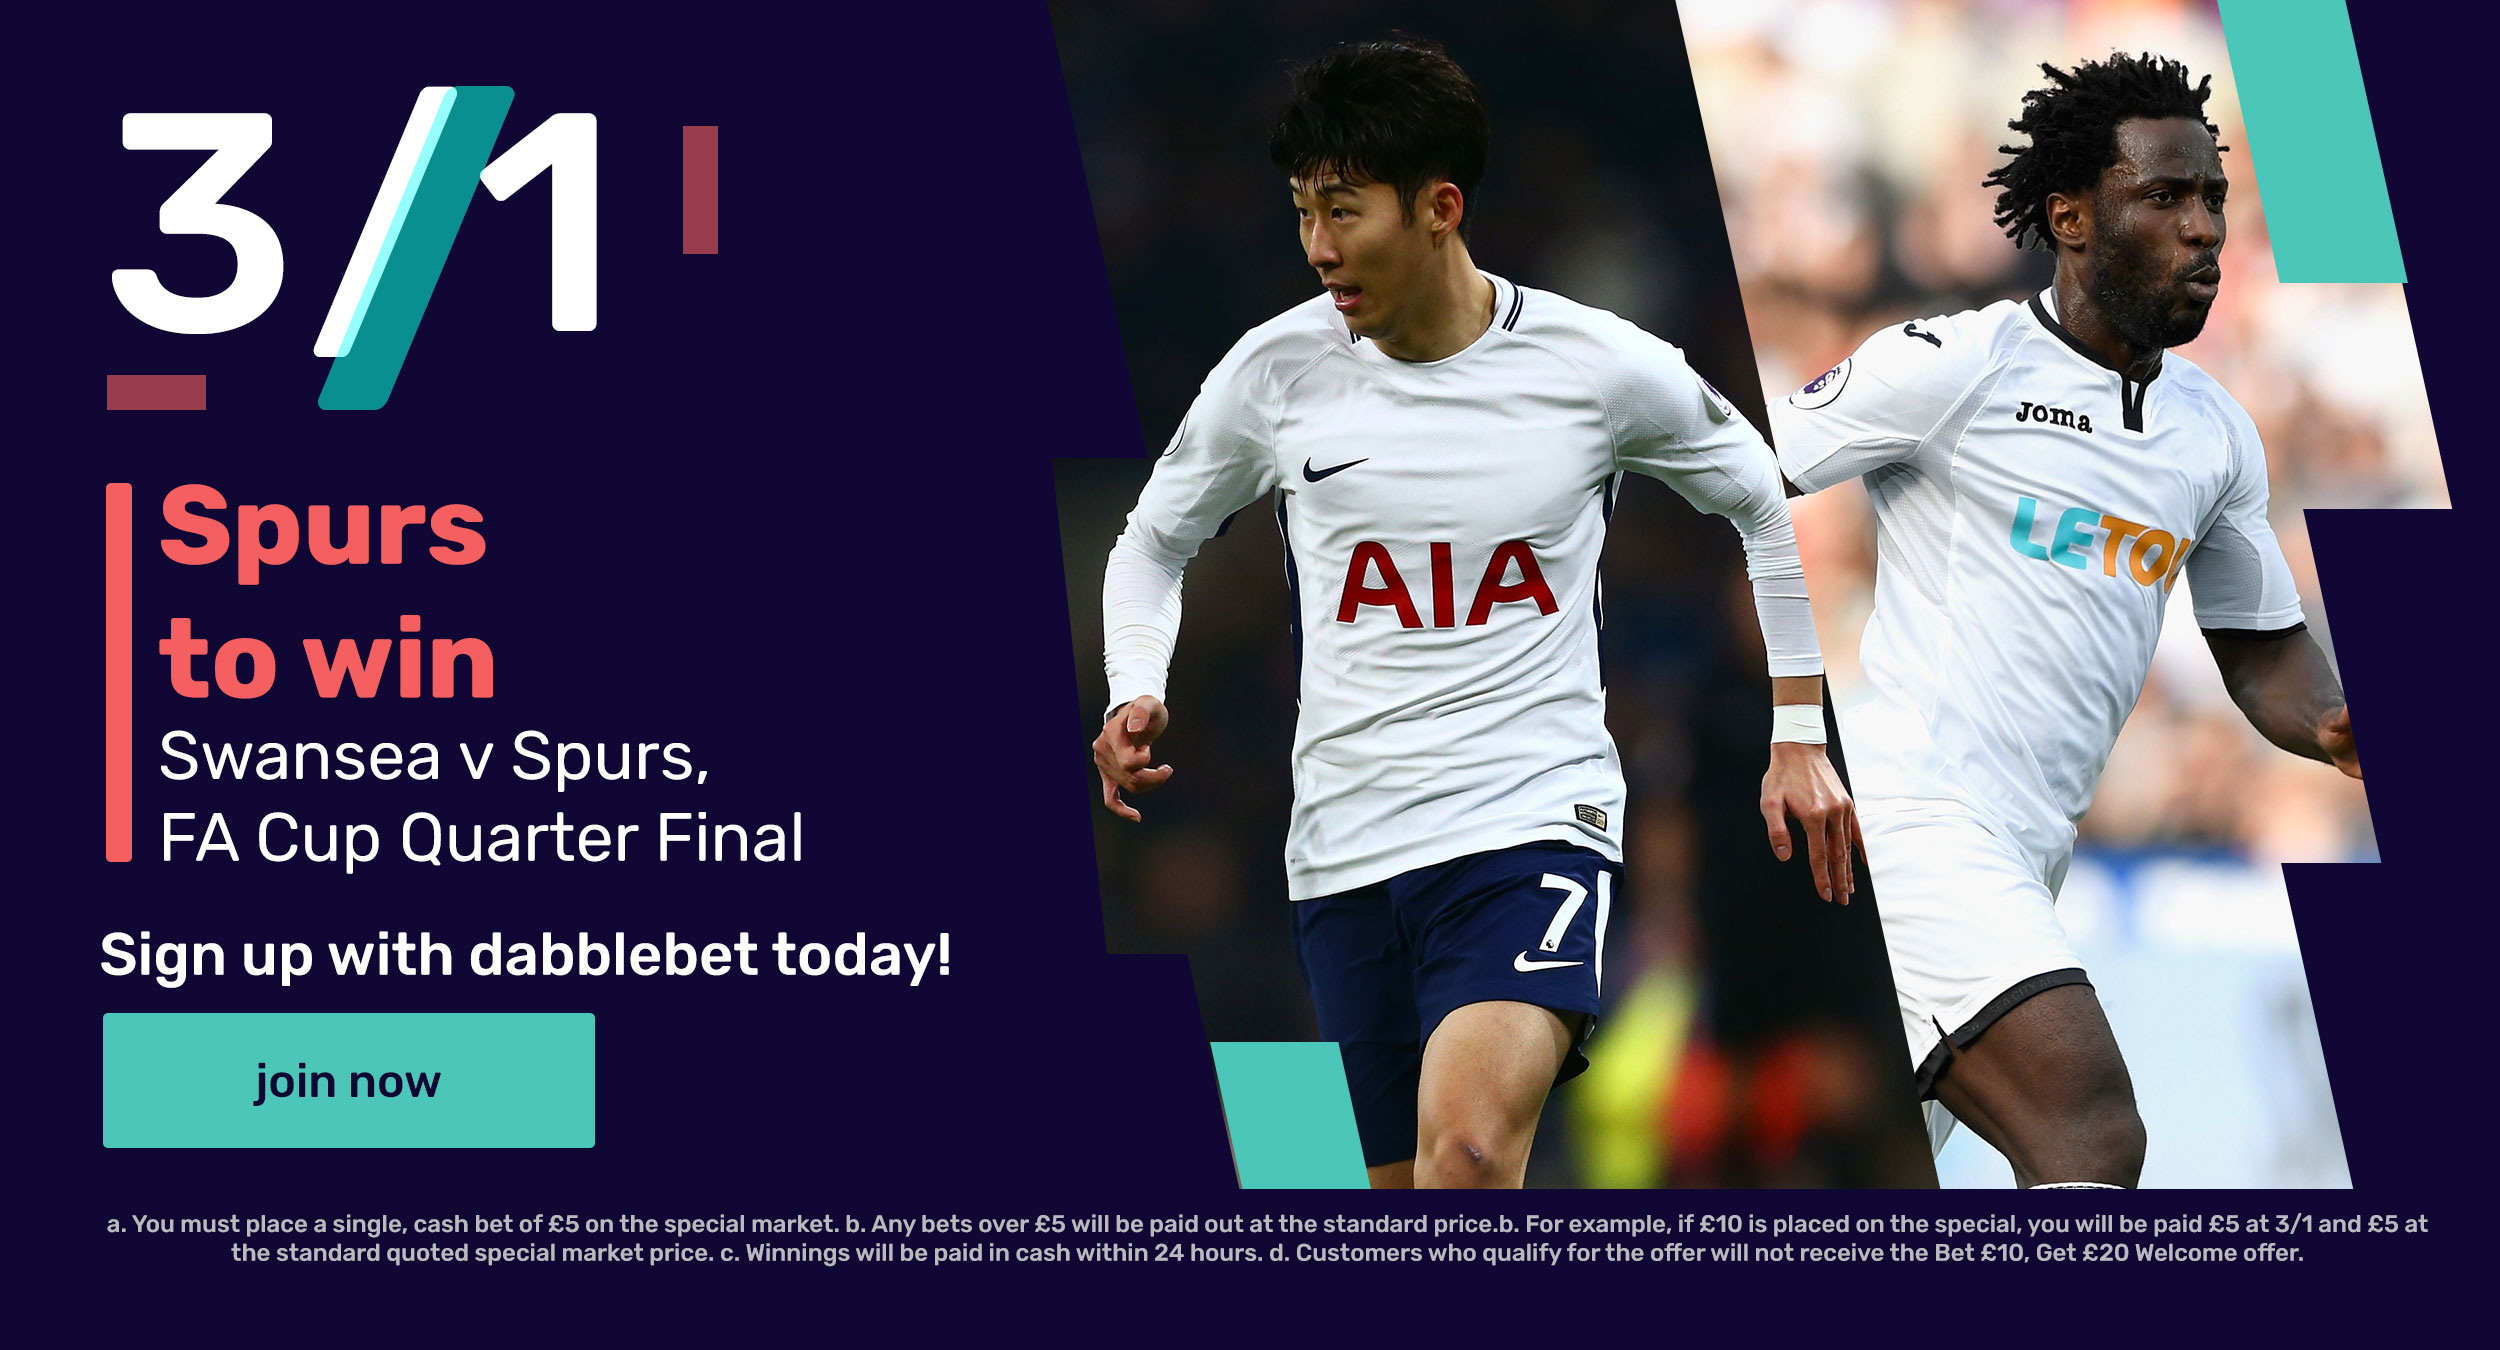 Spurs Swansea dabblebet offer